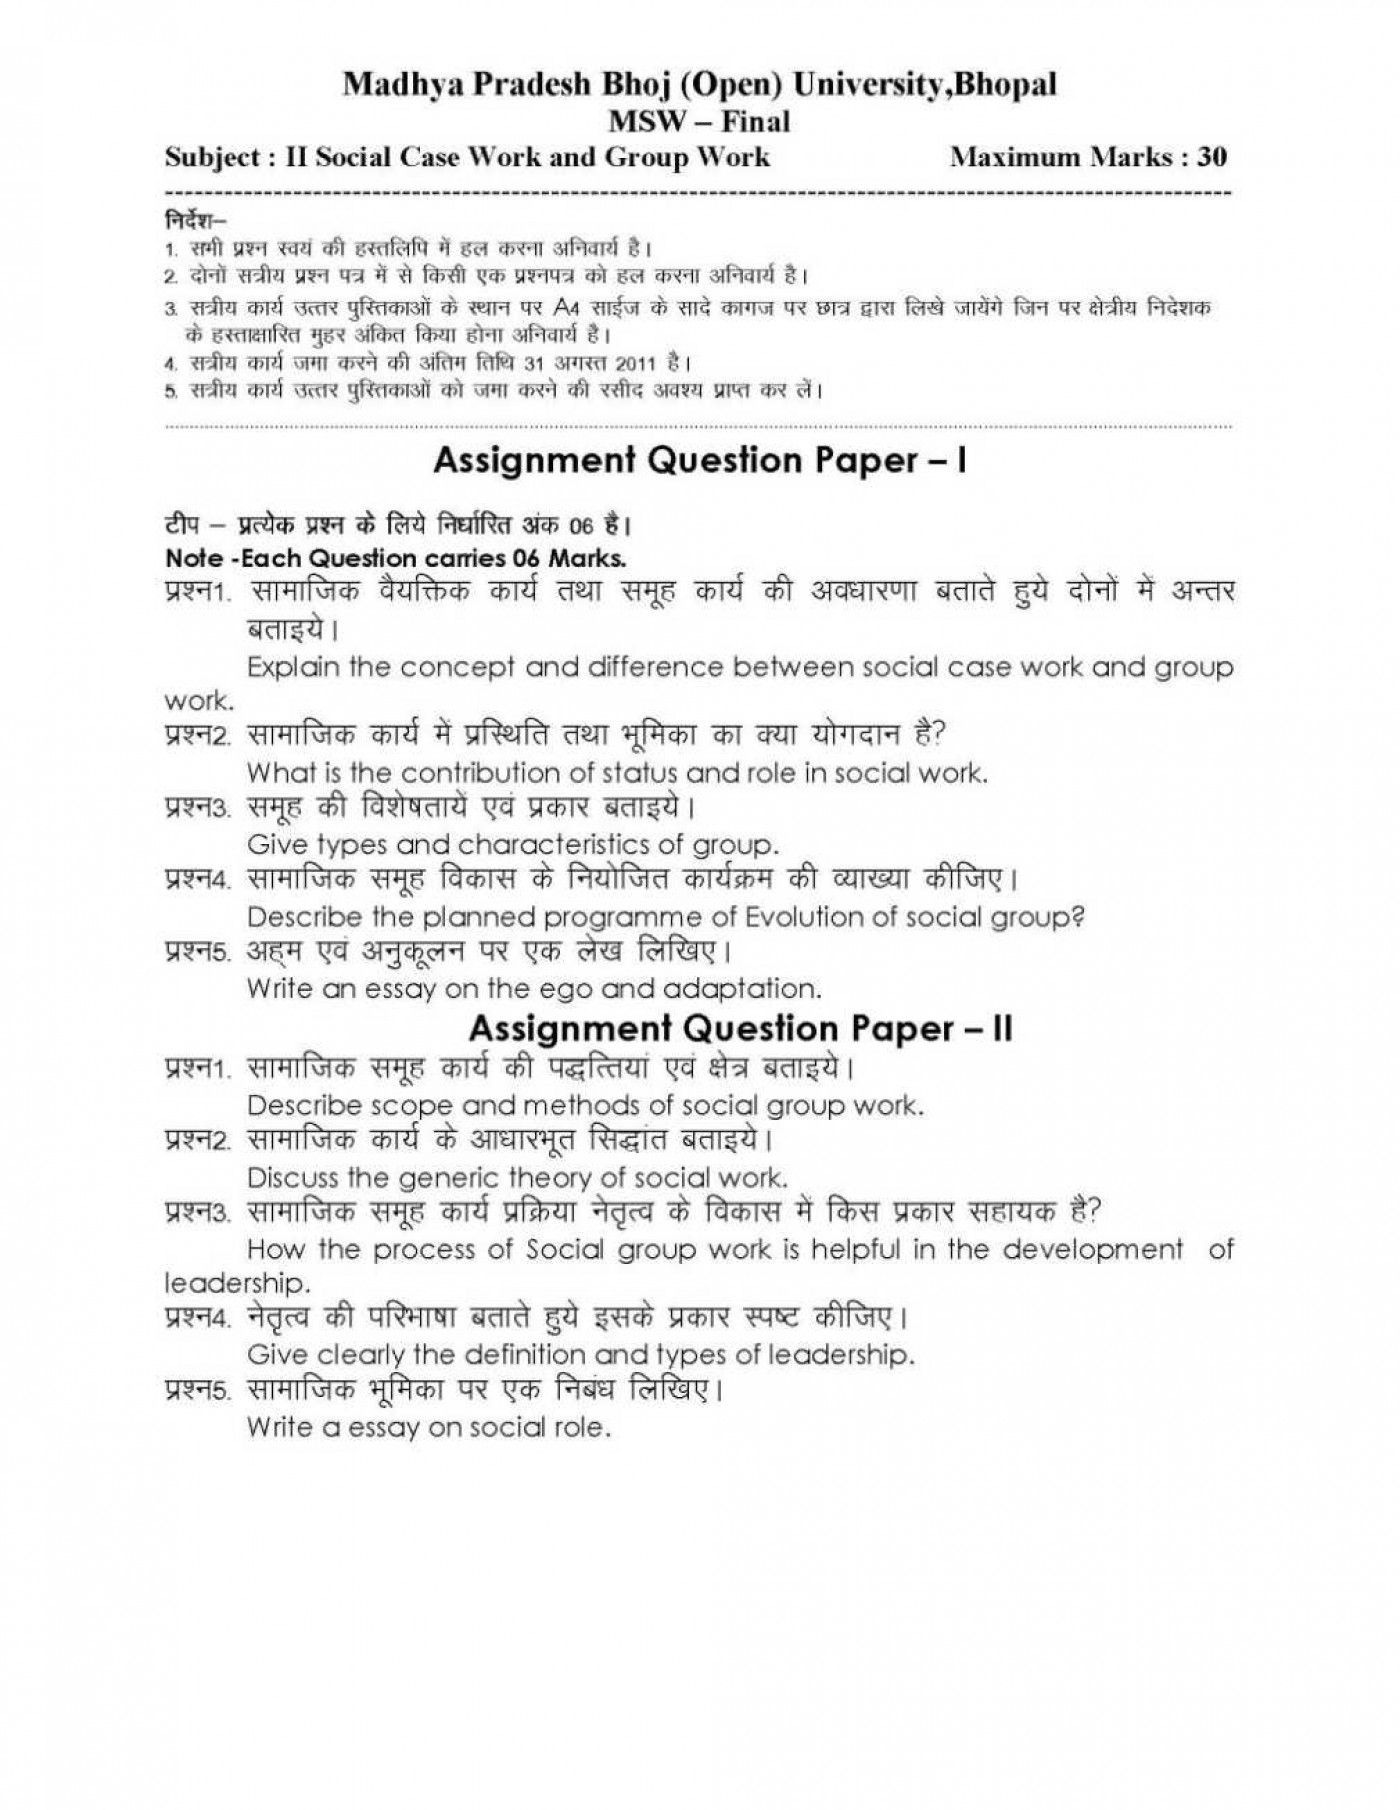 012 Bhoj University Bhopal Msw Definition Essays Surprising Essay Examples Topics Family Pdf 1400